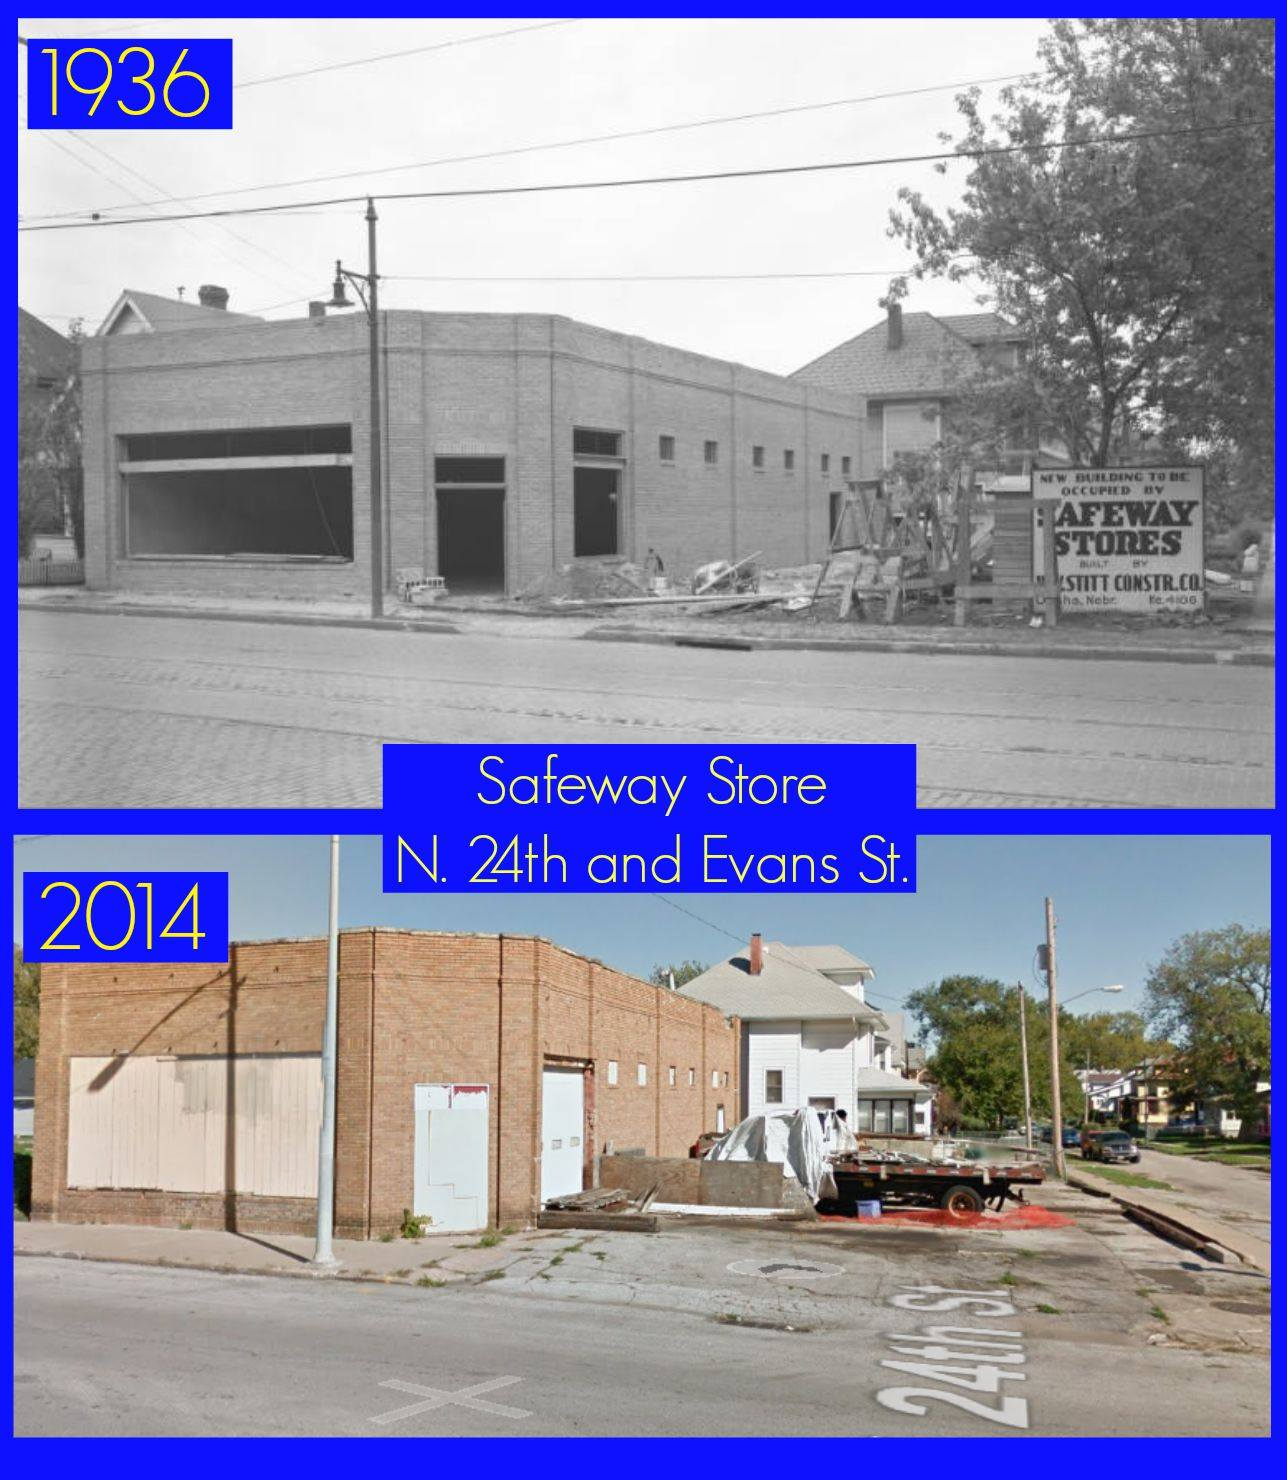 The Safeway Under Construction At North 24th And Evans In 1936 Was Open For Thirty Years Today Its A Storage Facility